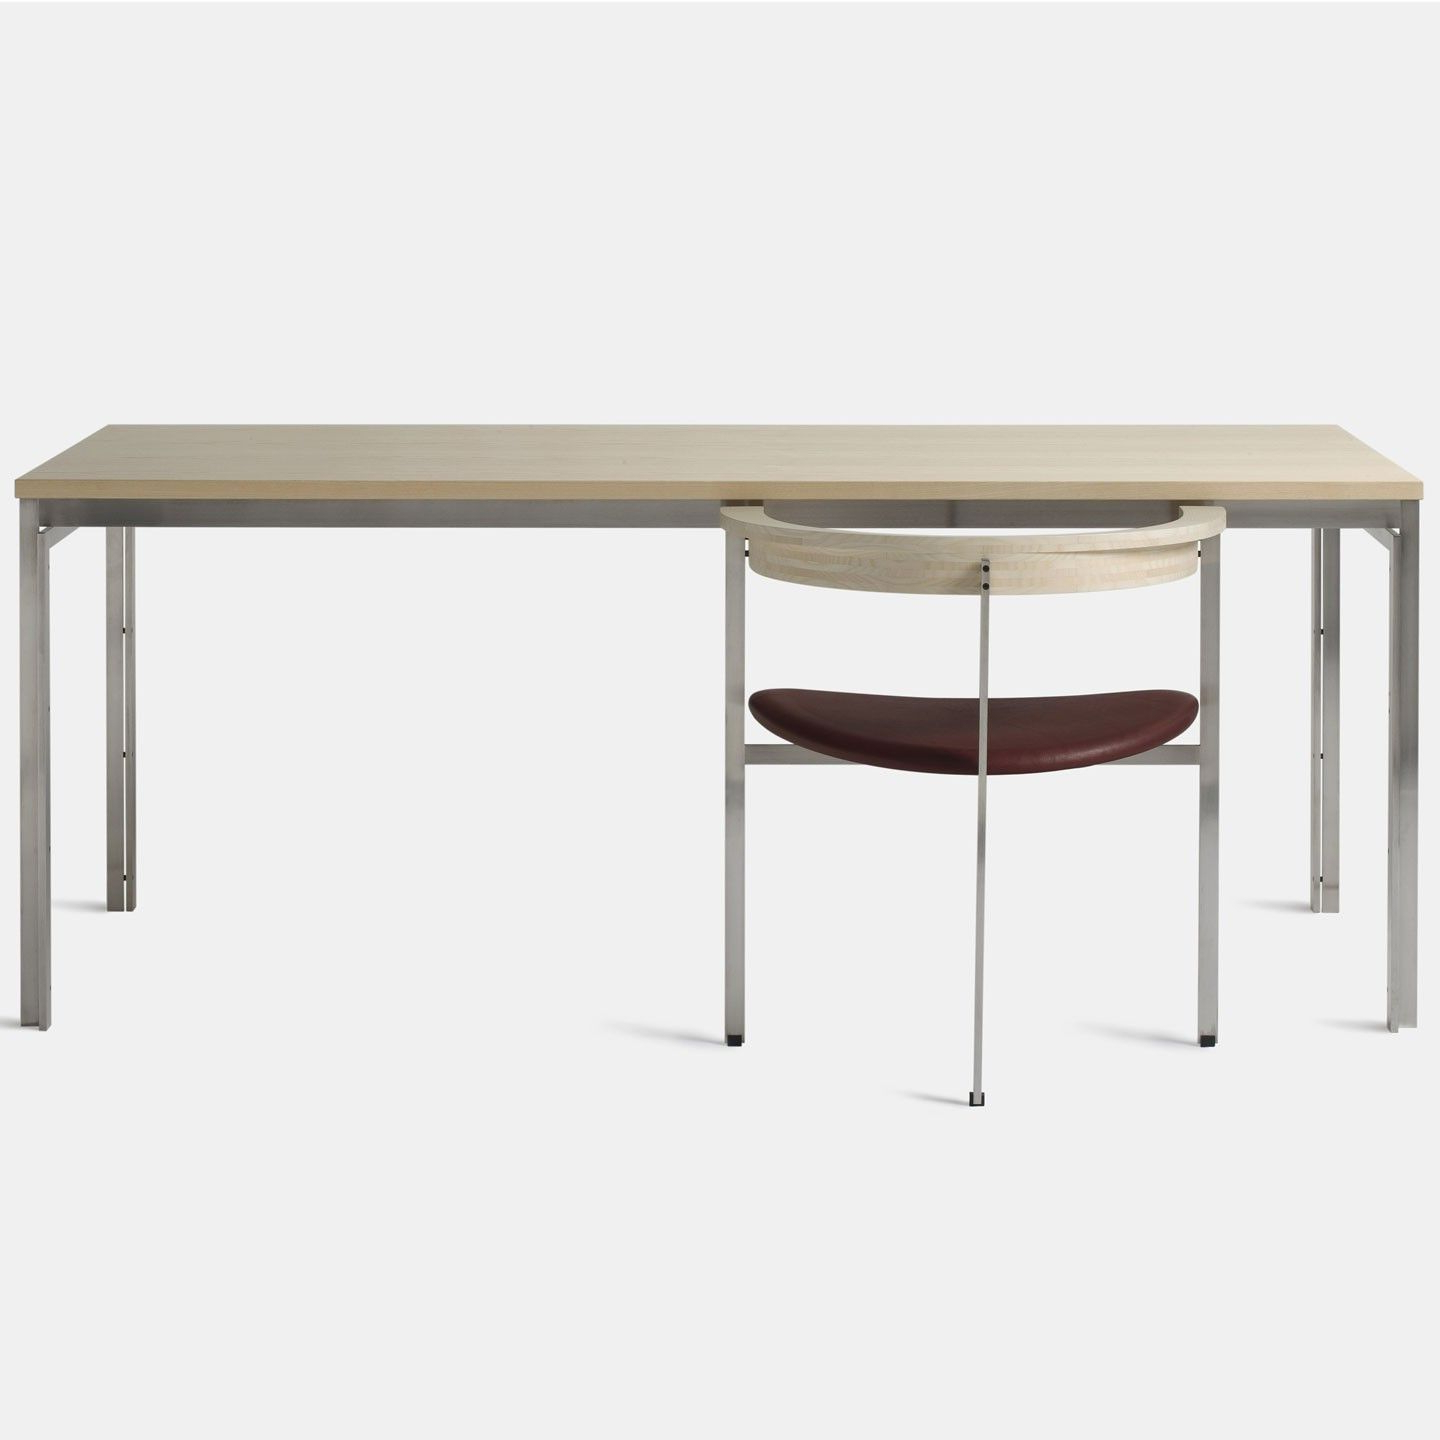 Contemporary Dining Table, Furniture With Dining Tables With Brushed Stainless Steel Frame (Gallery 23 of 30)